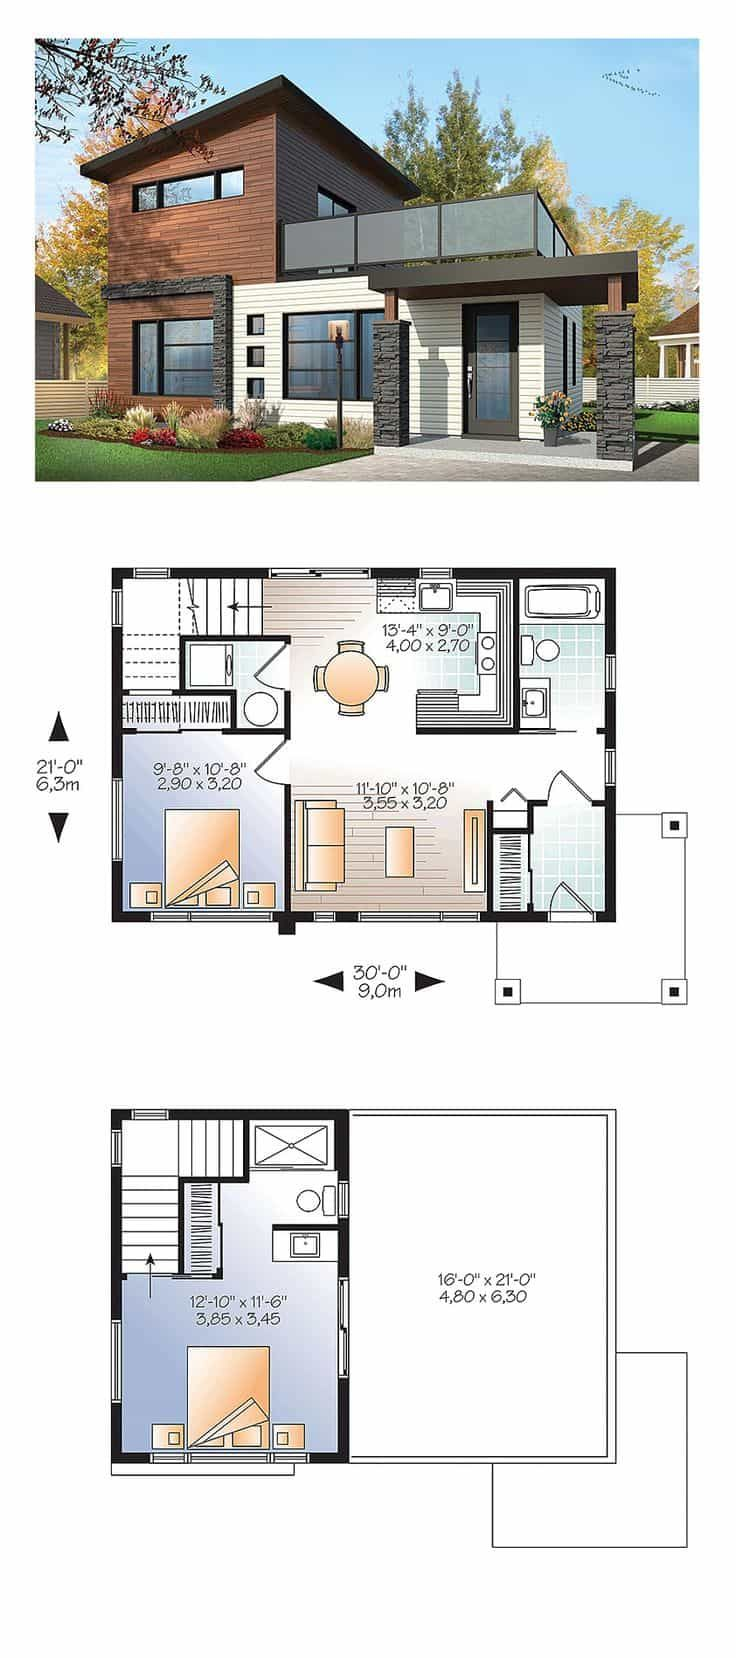 7 Modern House Plans Samples Modern Home Small House Plans Modern Style House Plans House Plans